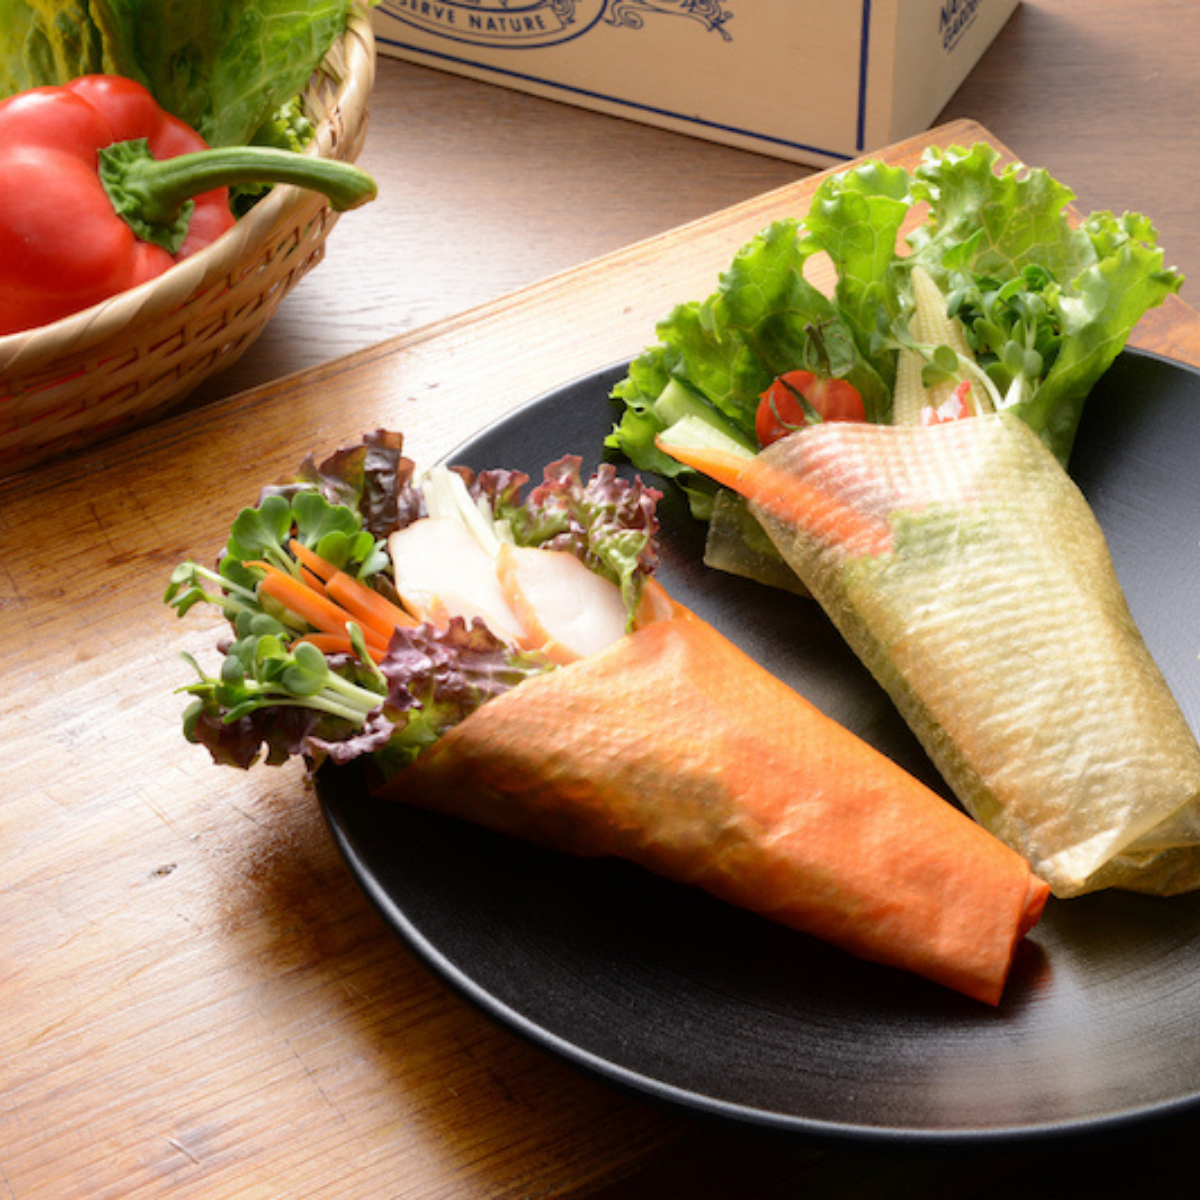 A plate of two vegetable wraps next to paprika